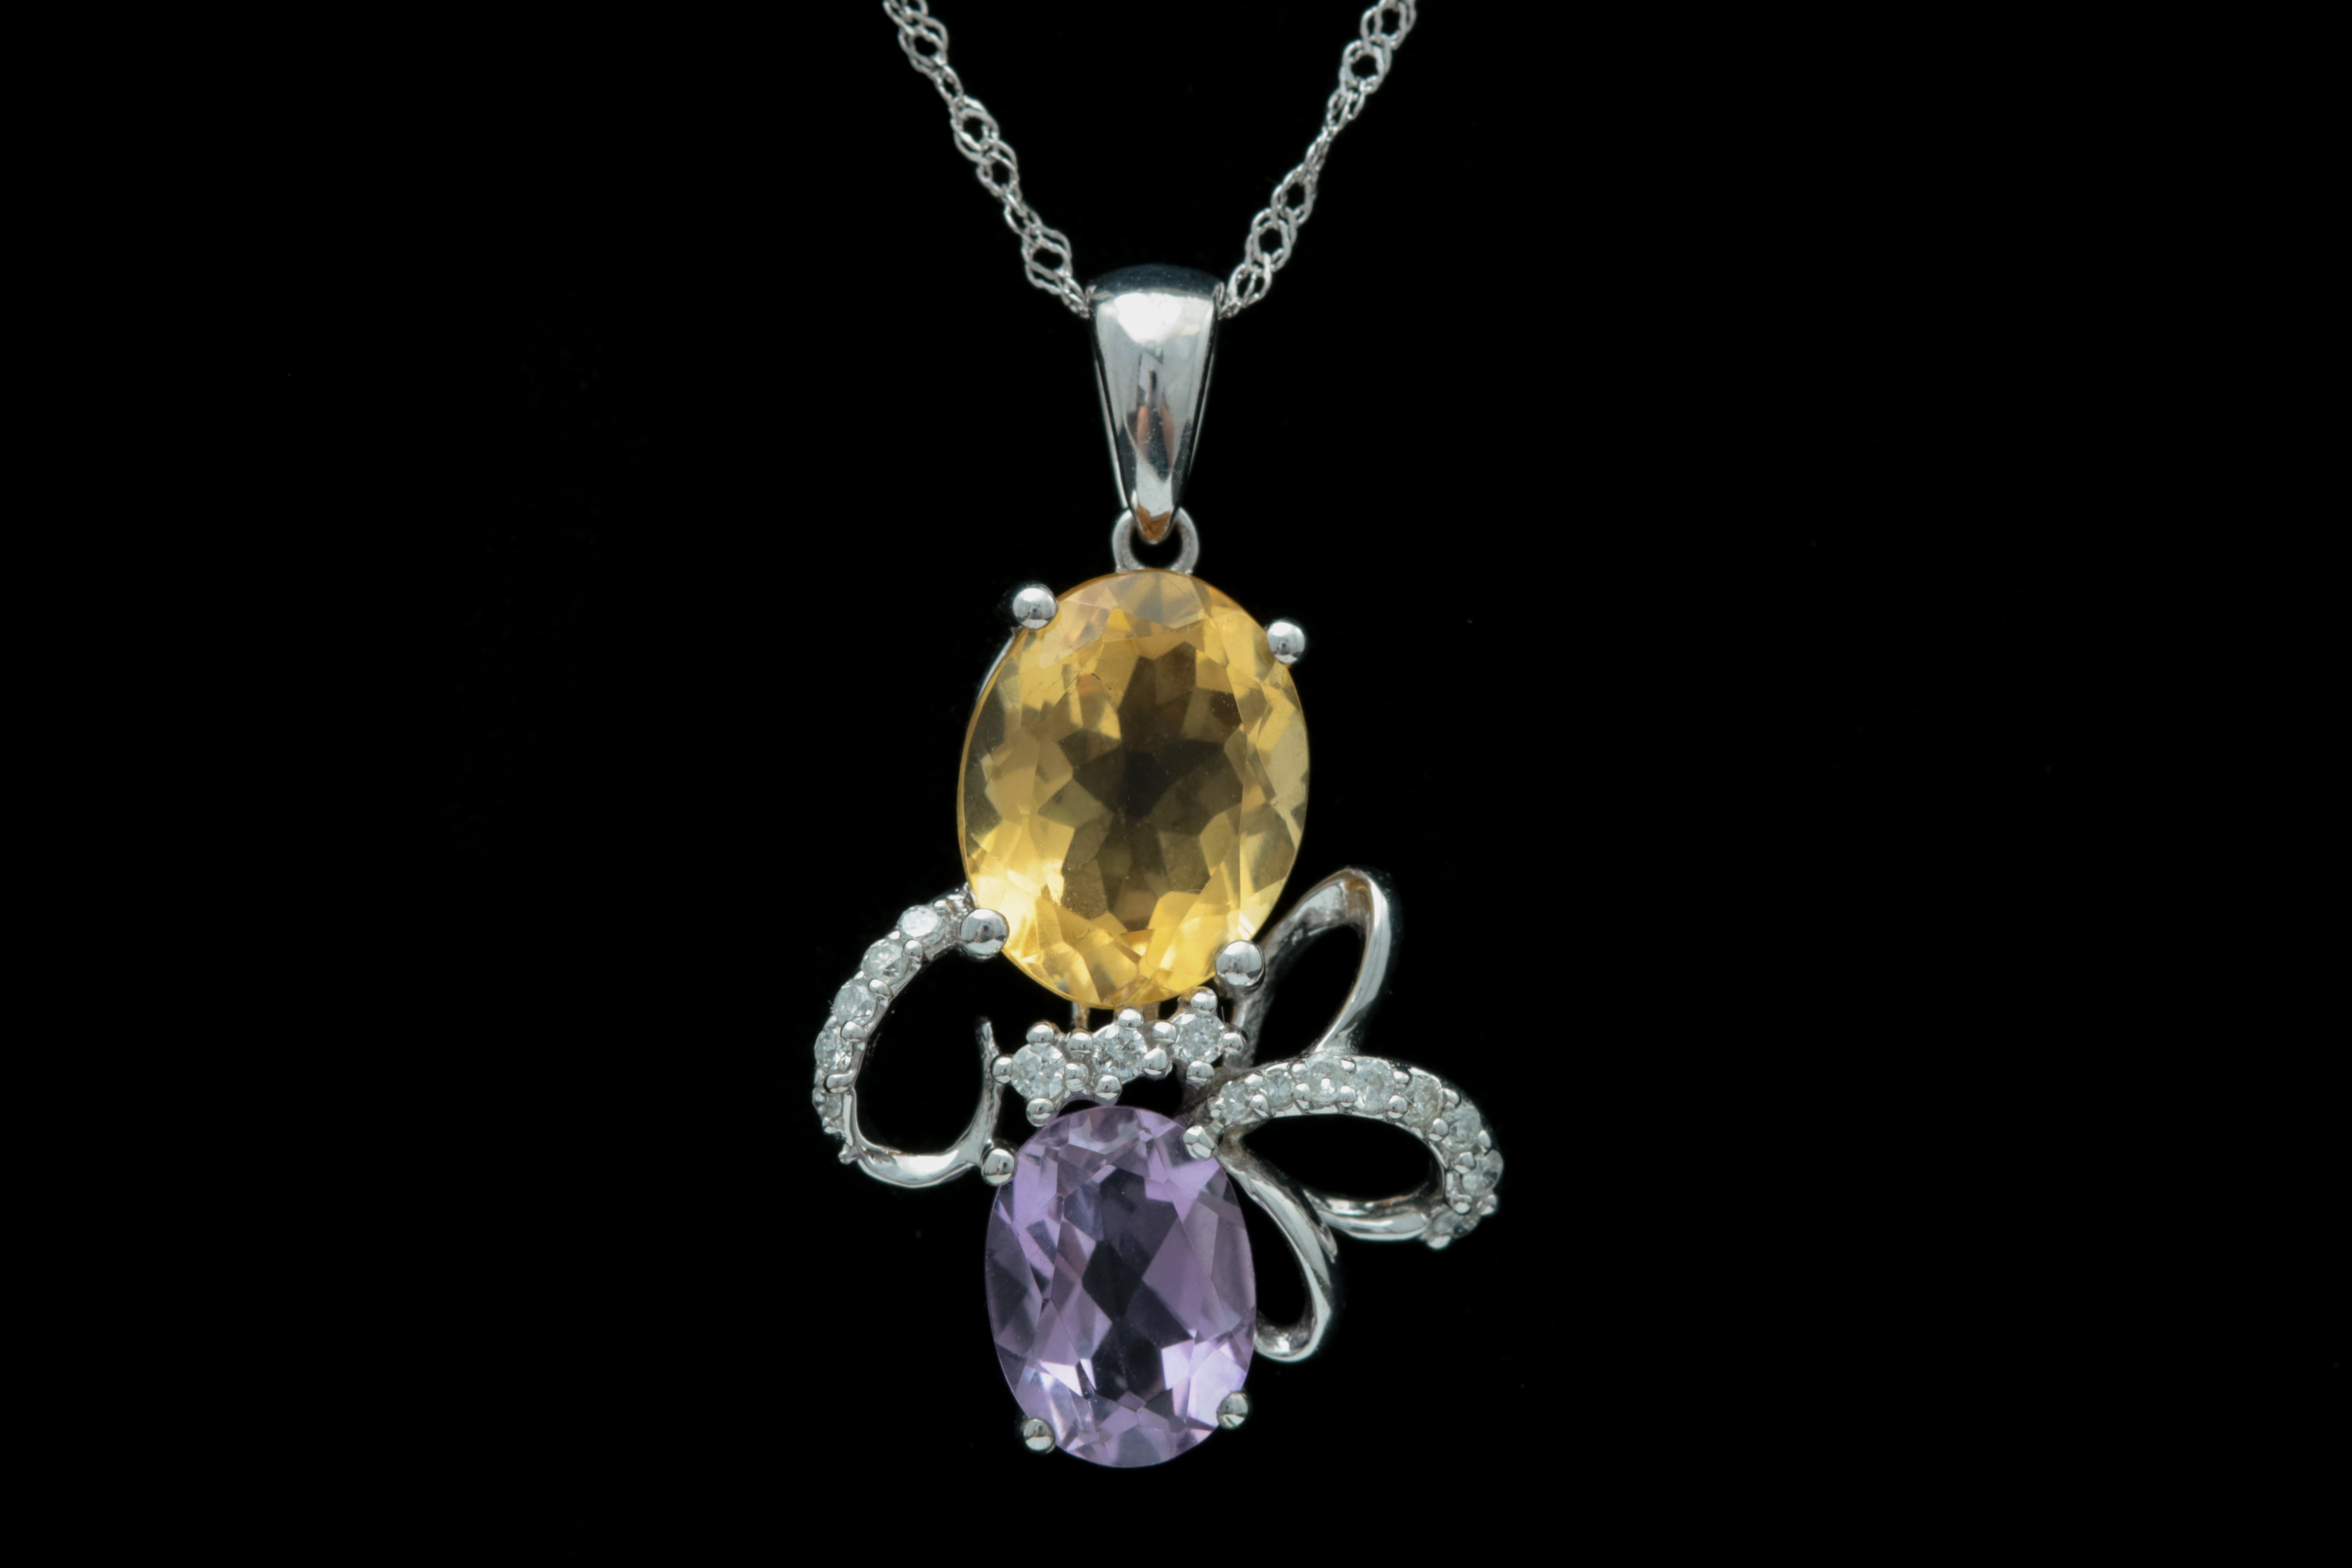 18K White Gold, Citrine, Amethyst and Diamond Pendant with Chain